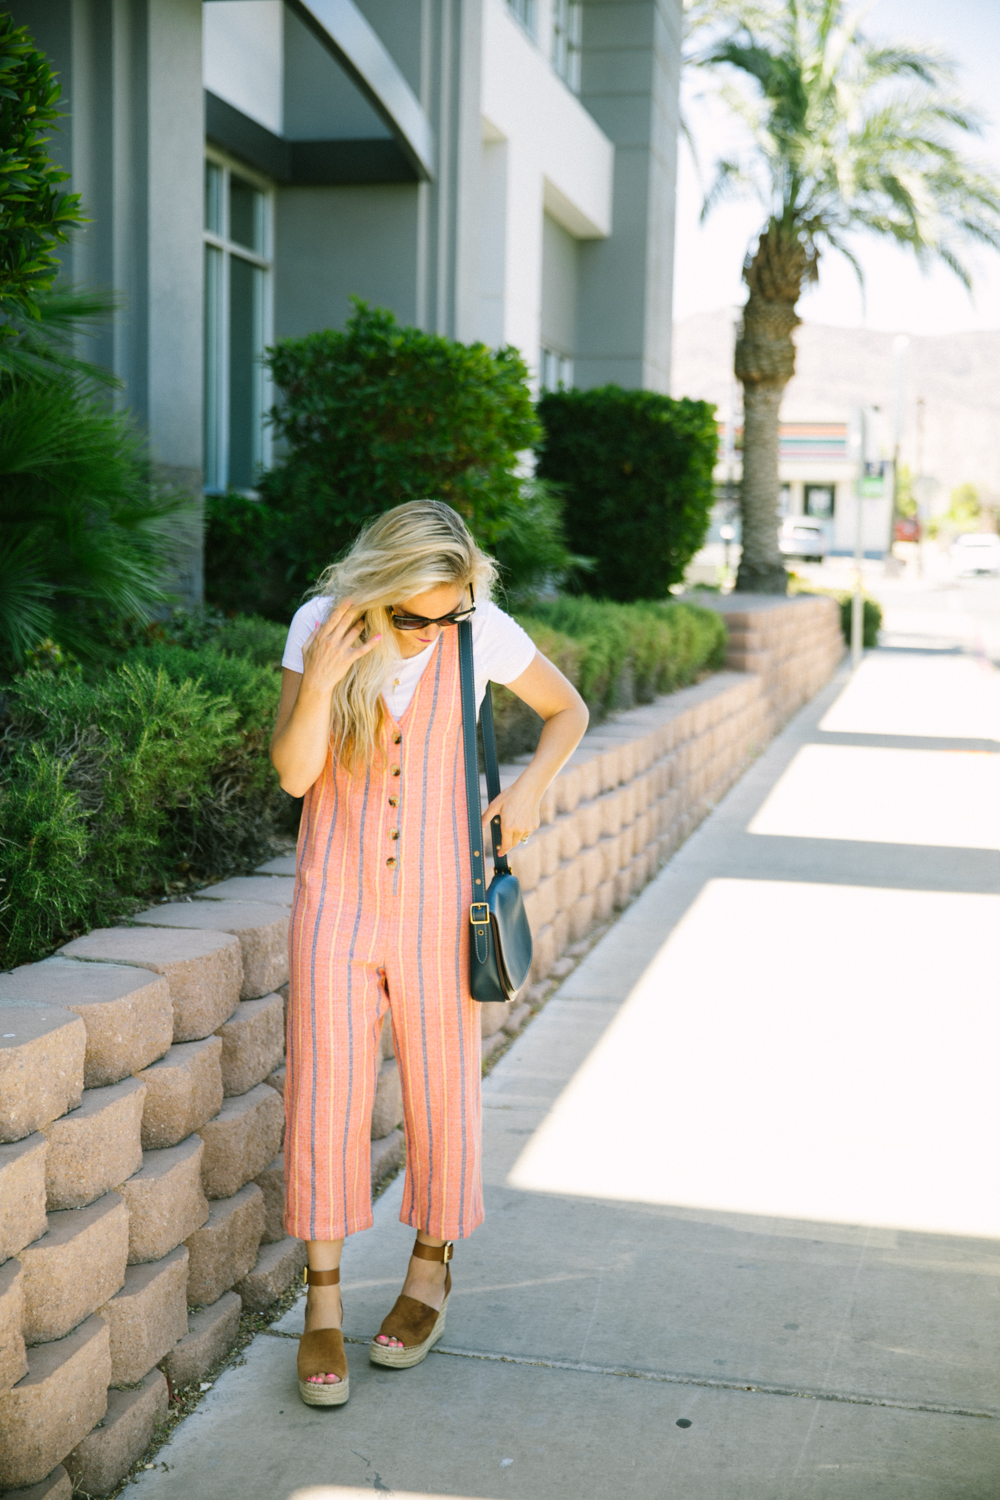 Current favorites featured by popular Las Vegas bloggers, Life of a Sister